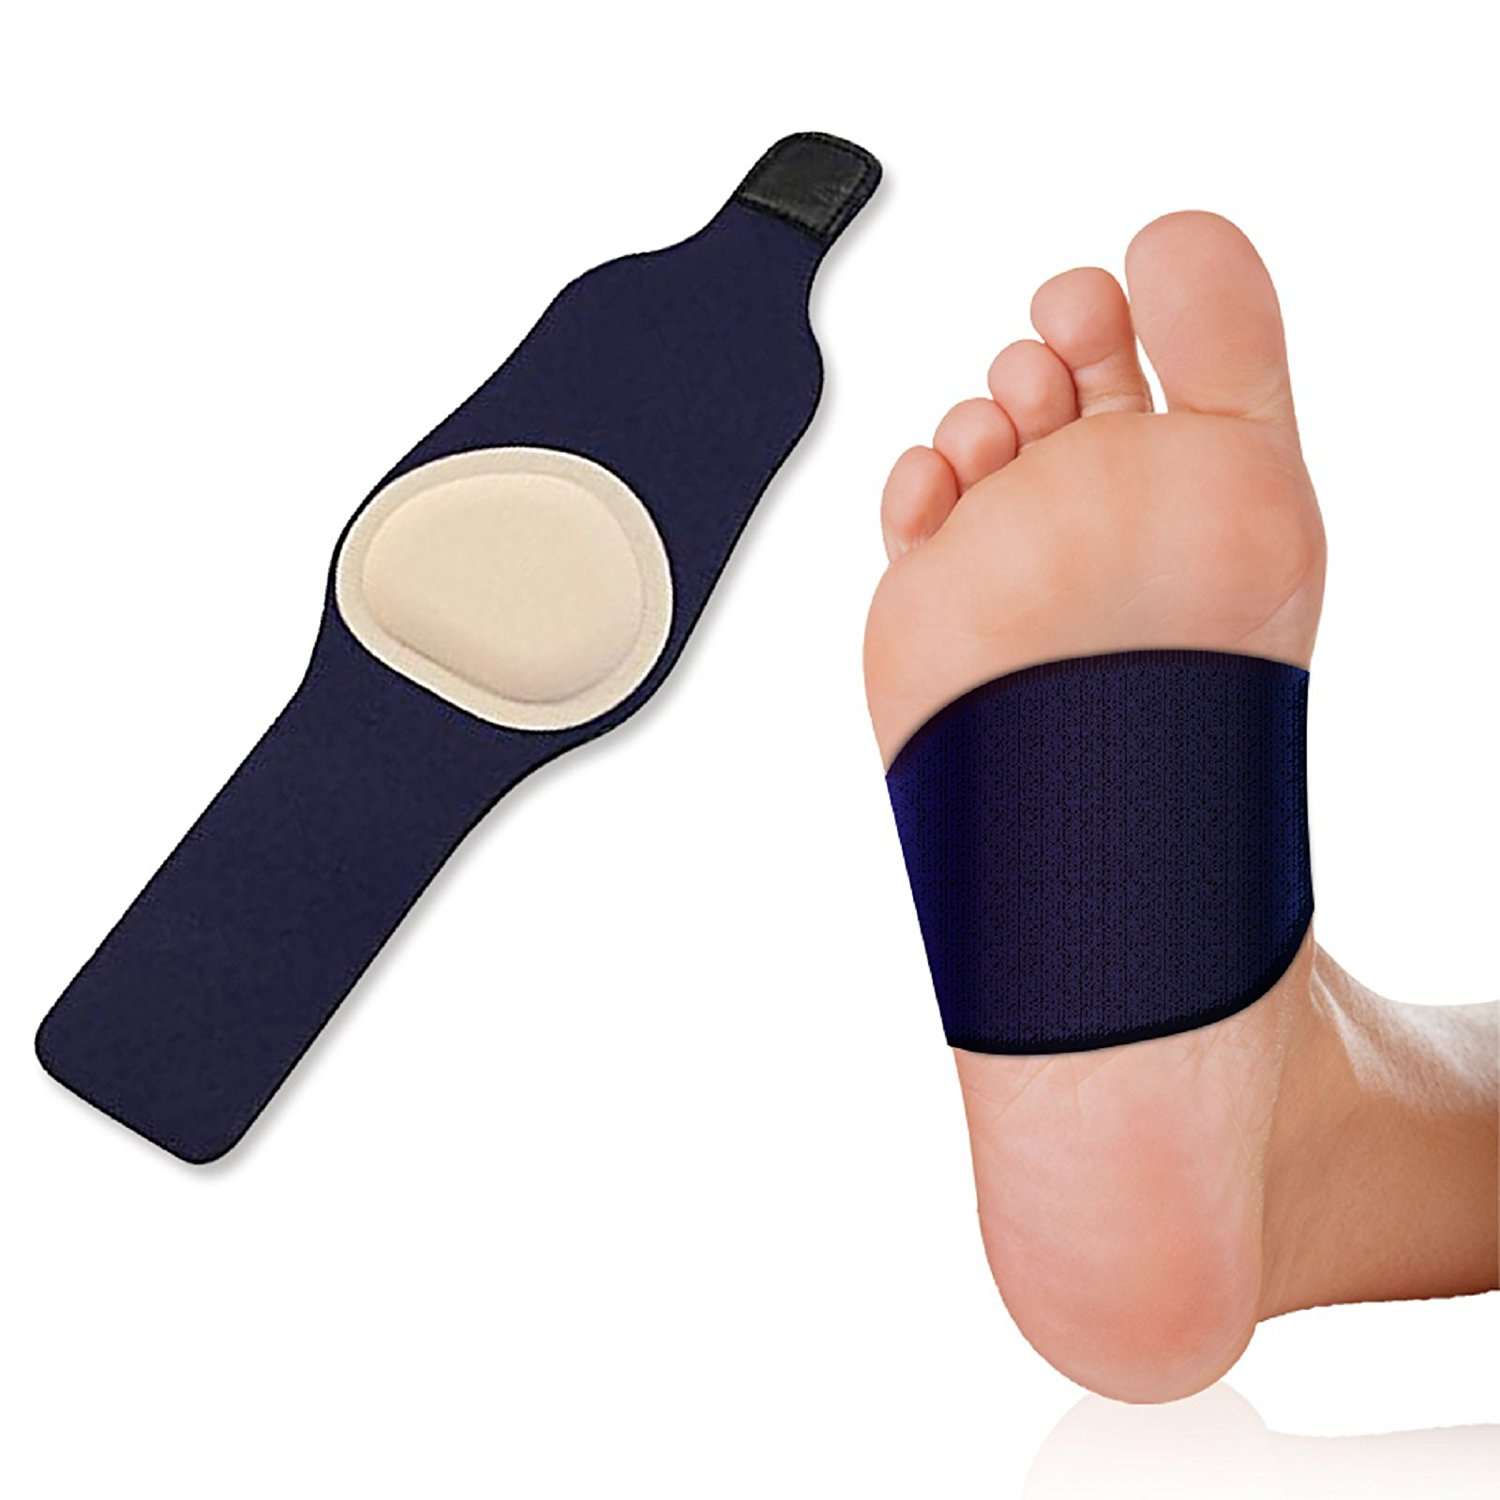 most popular new arrival popular stores Plantar Fasciitis Arch Support Foot Pain Sleeve – Soft Gel Padding ...